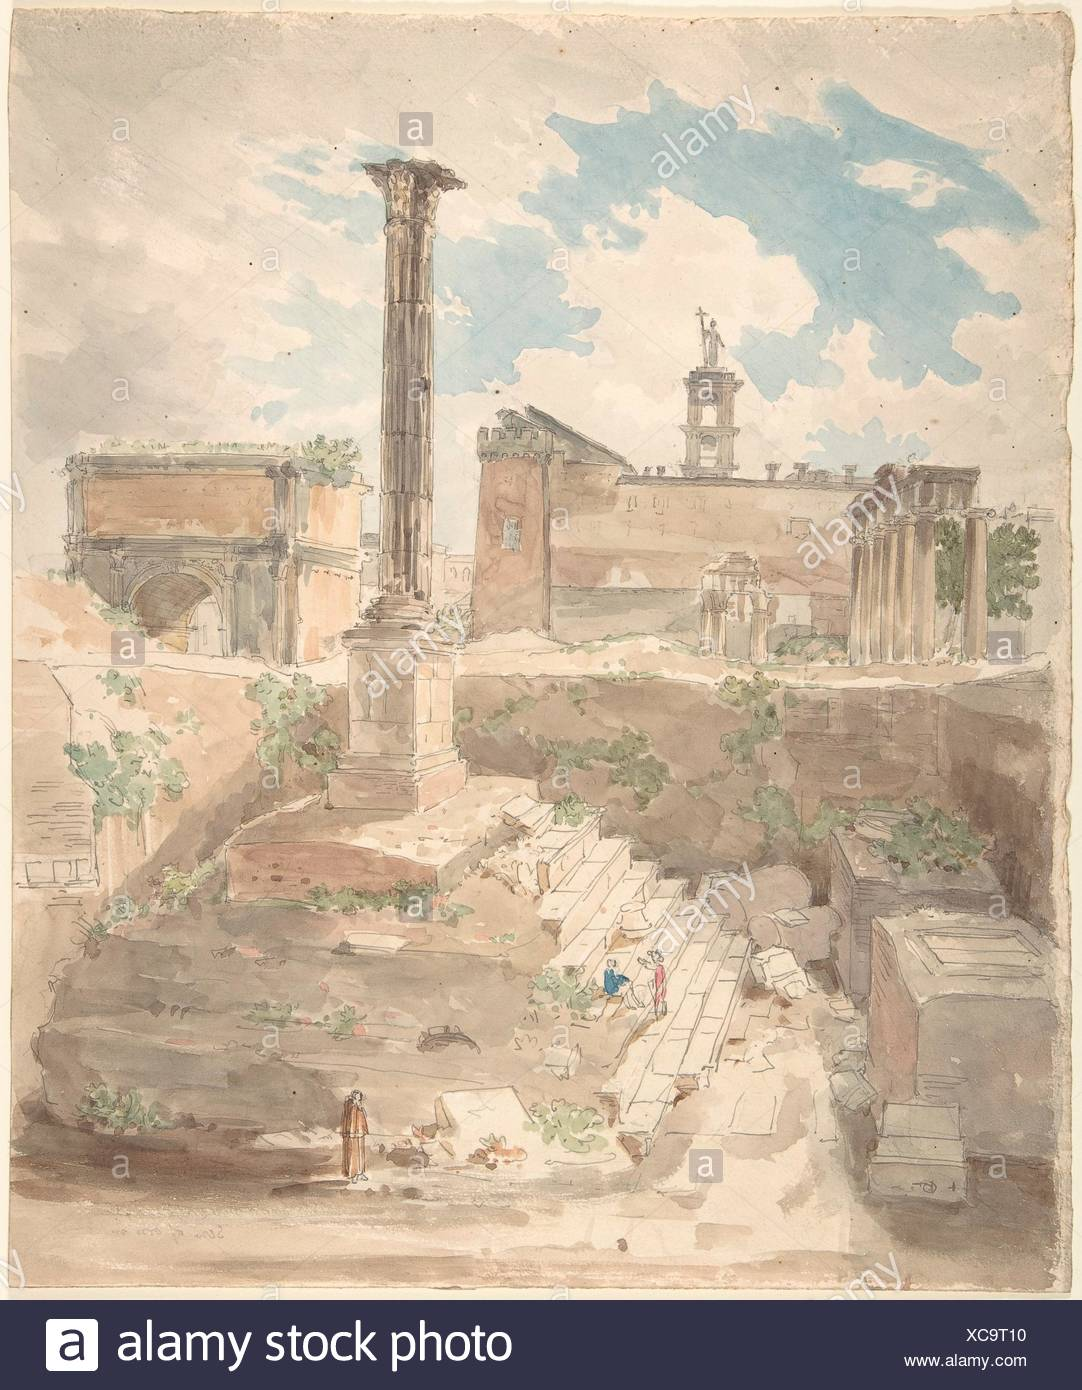 View of the Roman Forum, unexcavated. Artist: Attributed to Sir Charles Barry (British, London 1795-1860 London); Date: 1840; Medium: Watercolor over - Stock Image